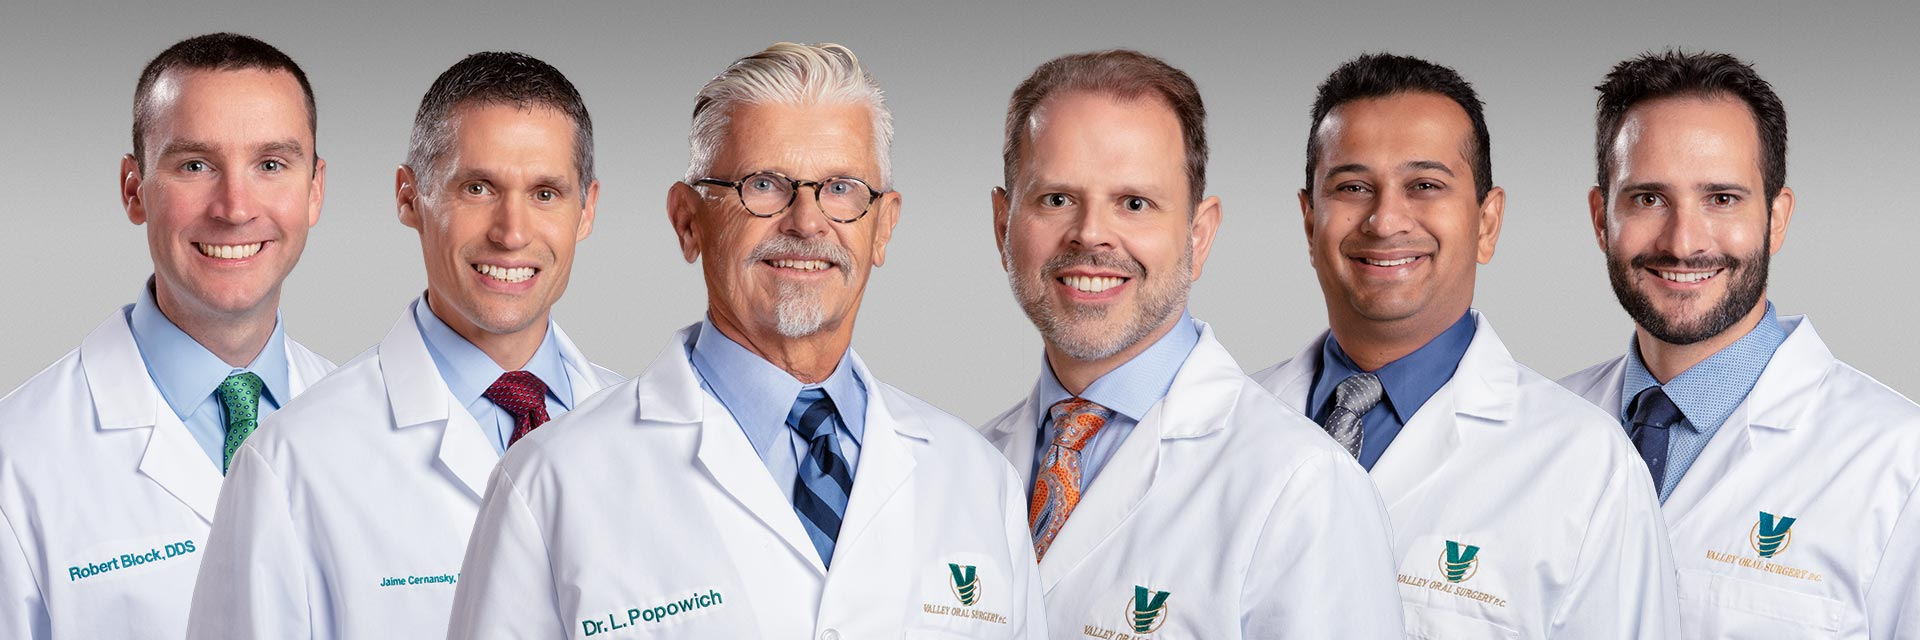 Photo of the surgeons of Valley Oral Surgery